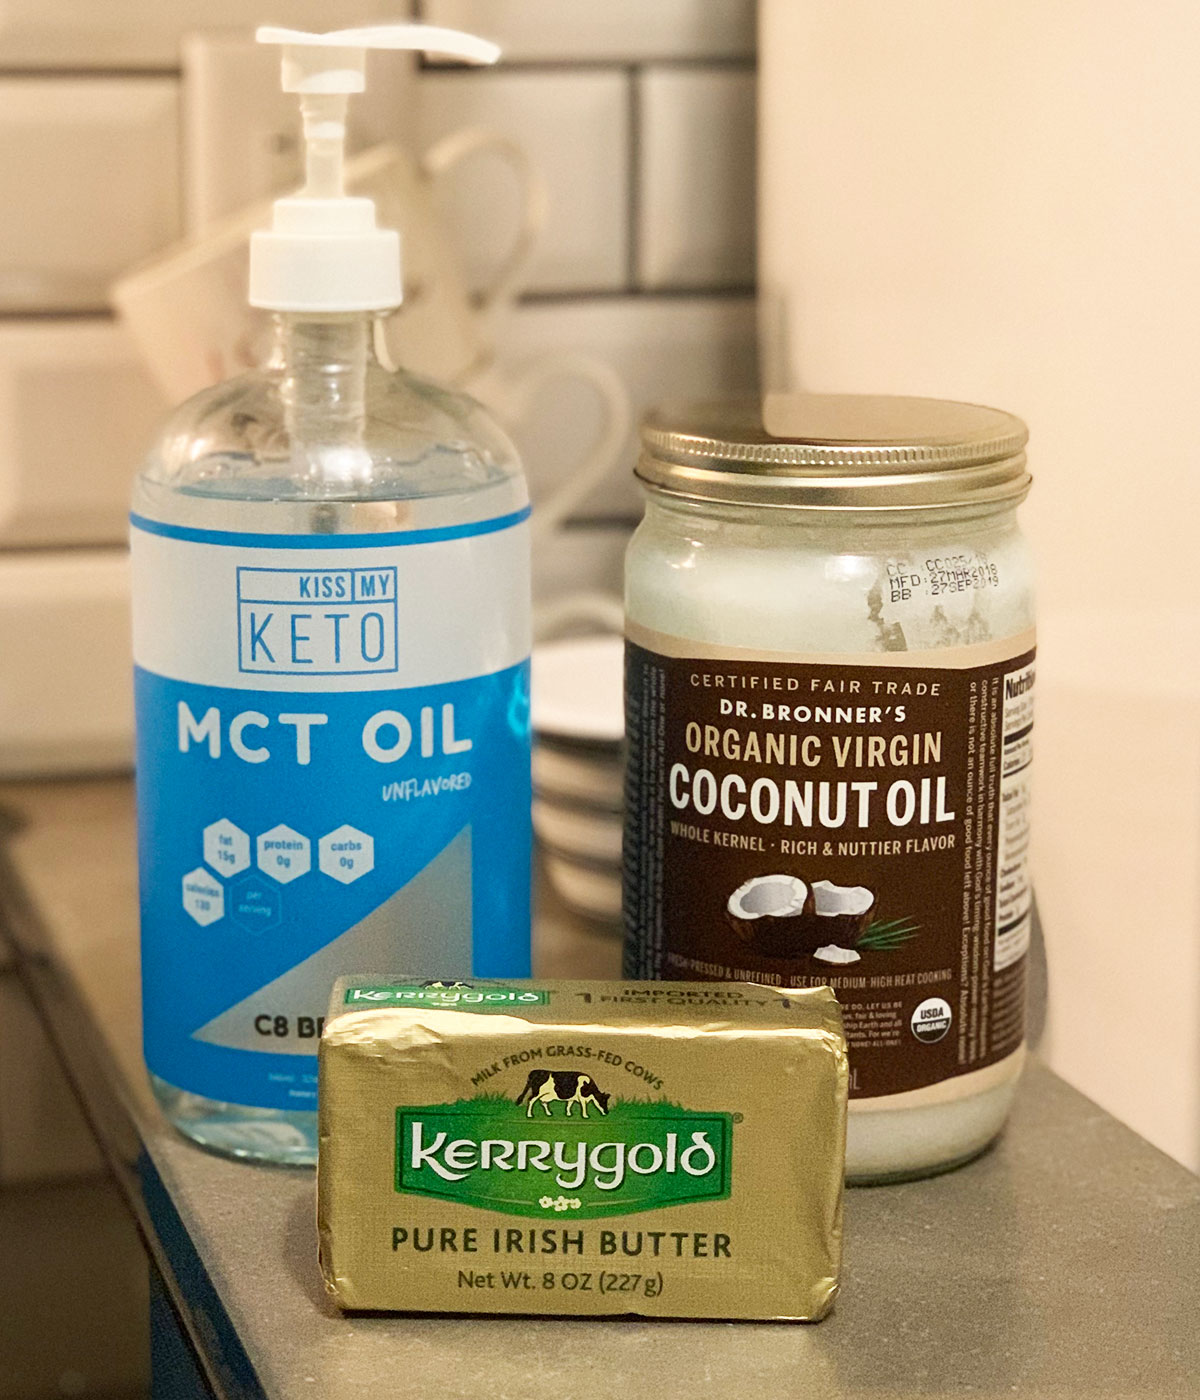 MCT oil and coconut oil, alongside Kerrygold butter